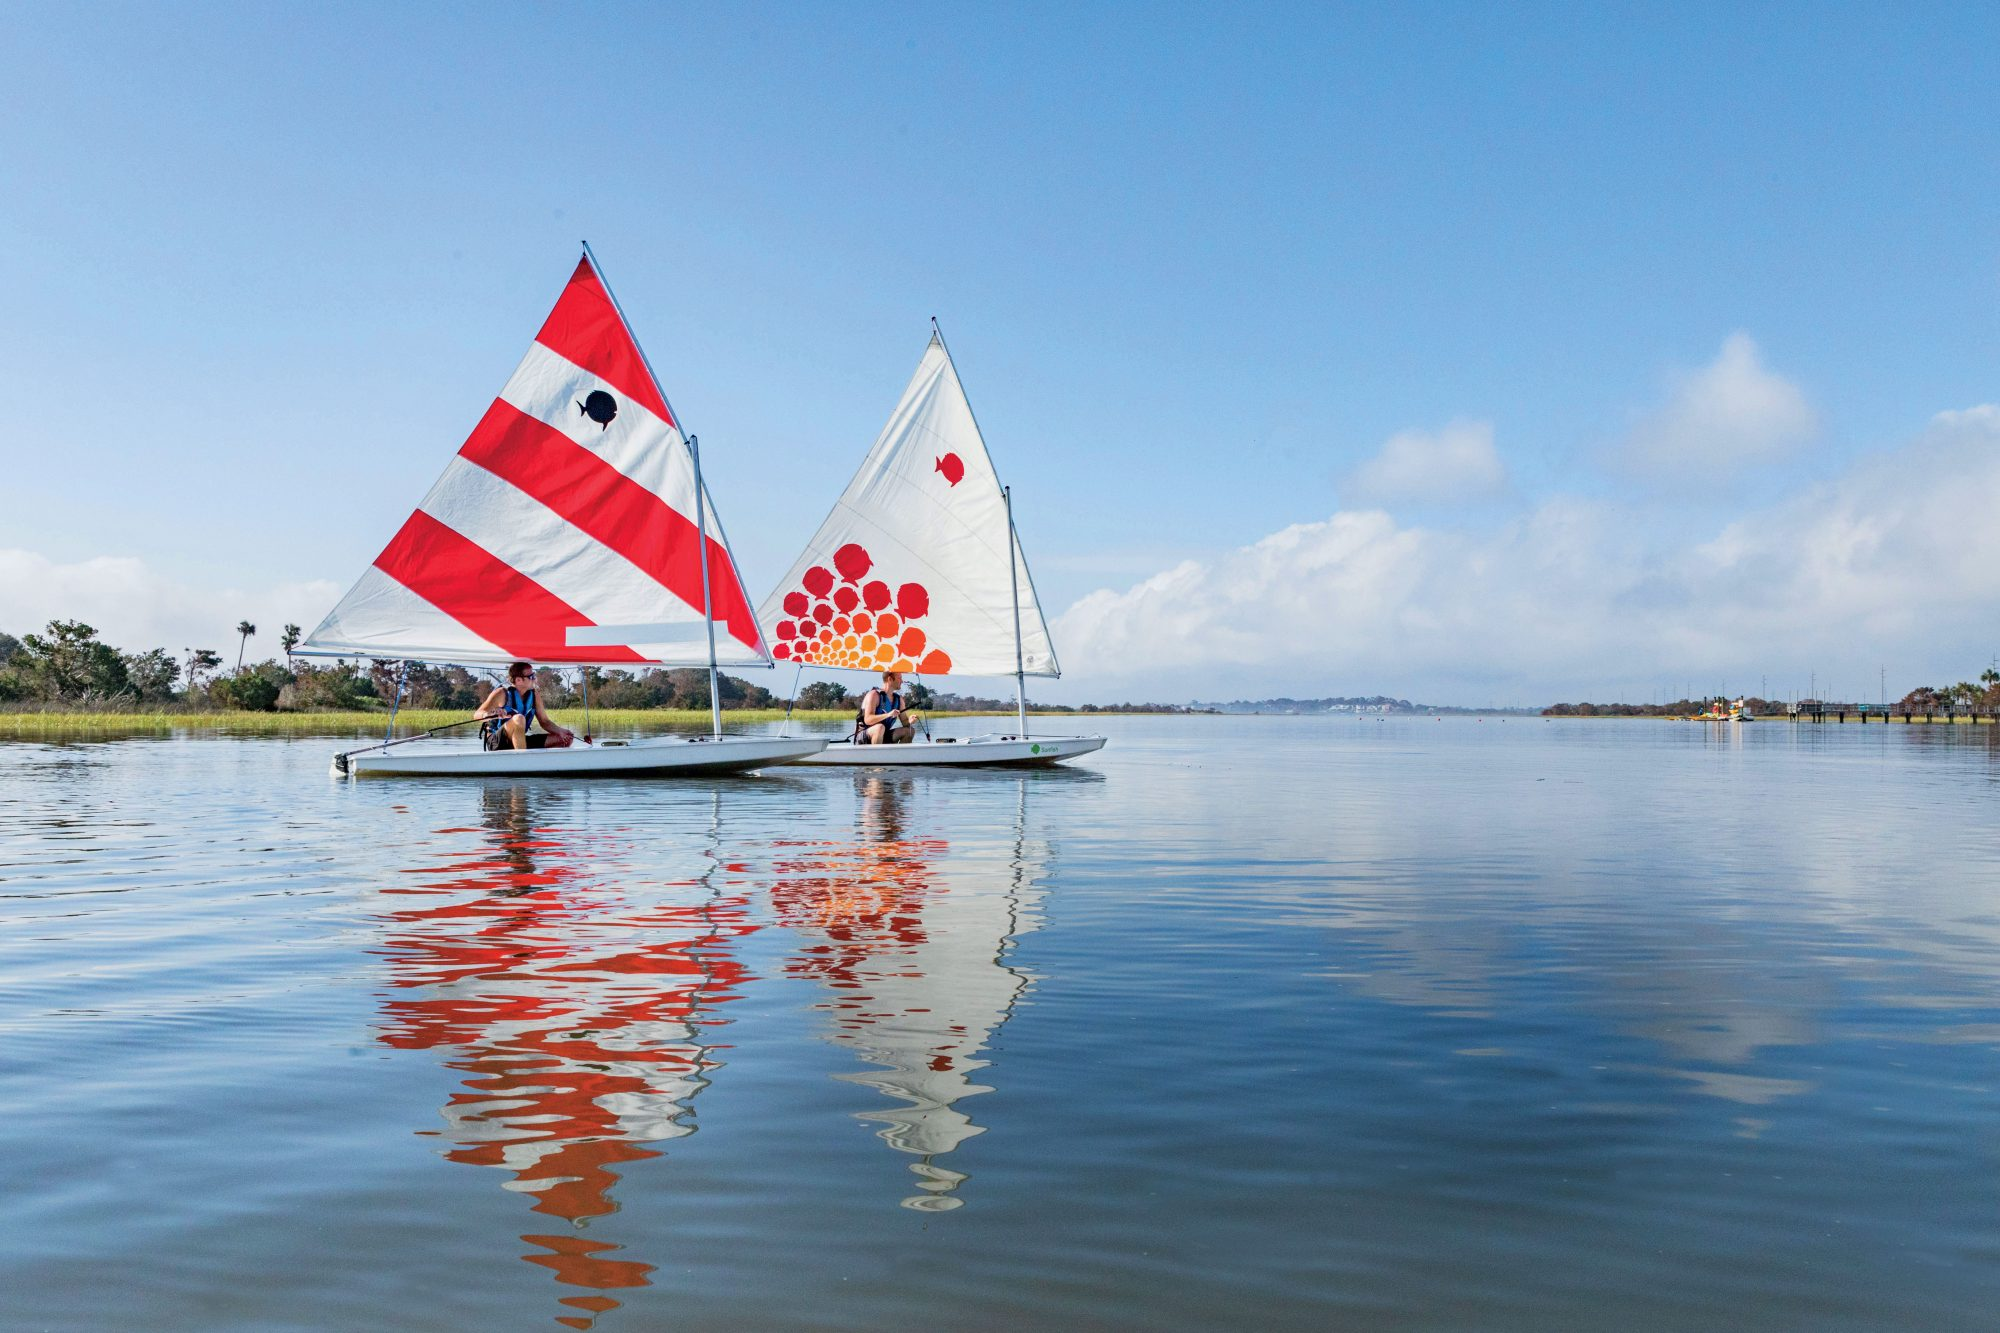 Sailboats at the Rainbow Island Outdoor Recreation Center, Sea Island, GA